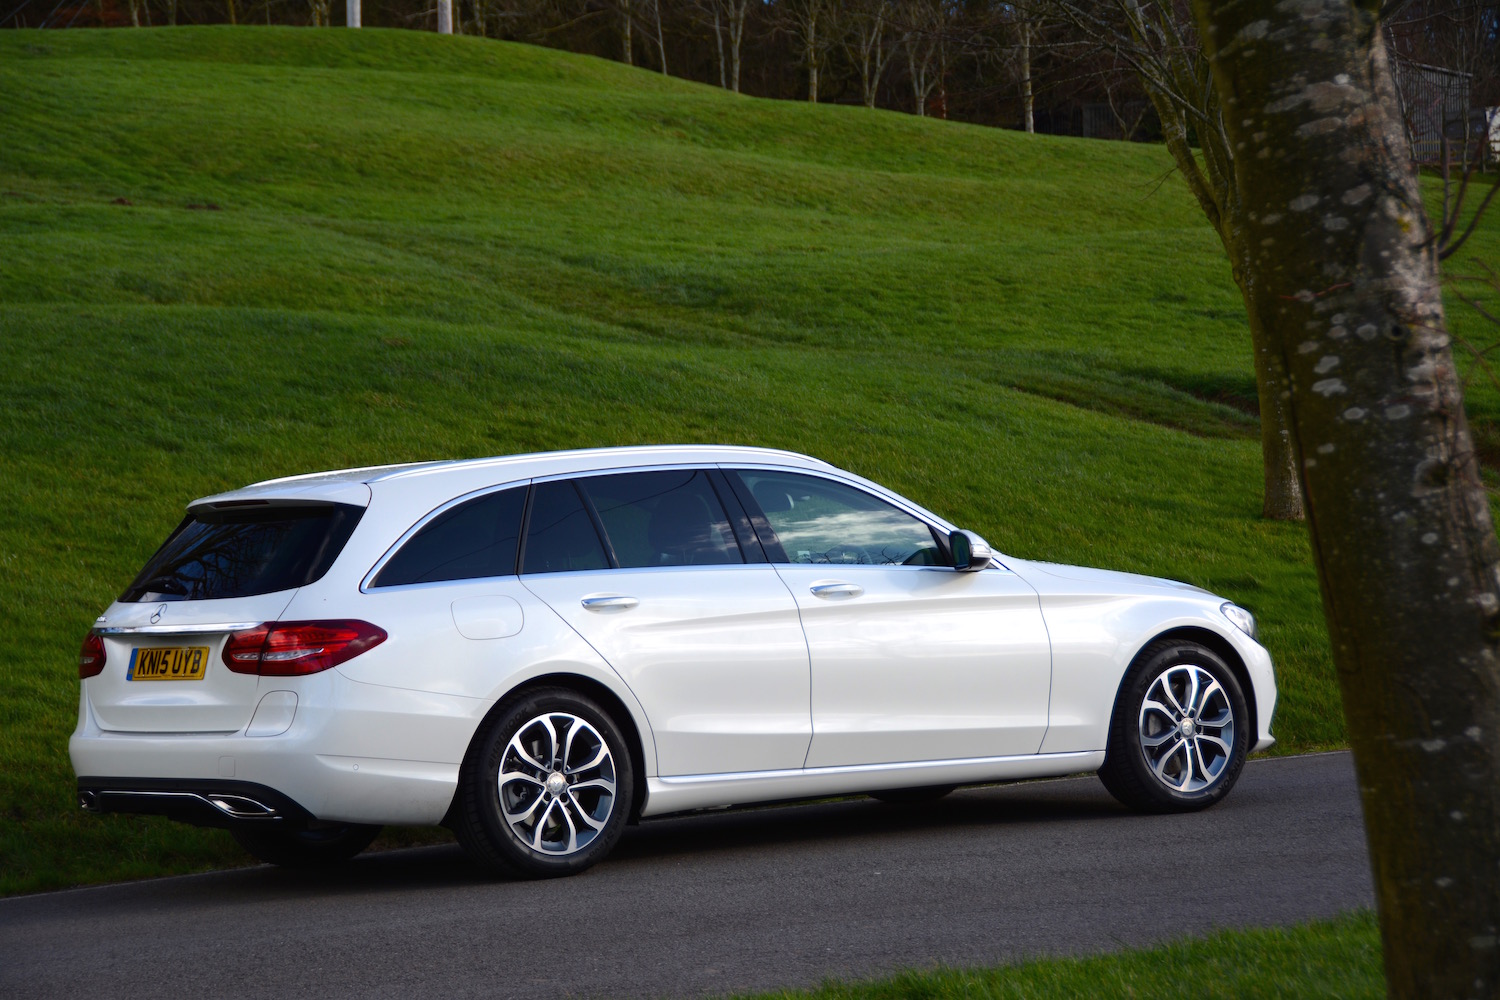 mercedes benz c 350 e sport estate review greencarguide